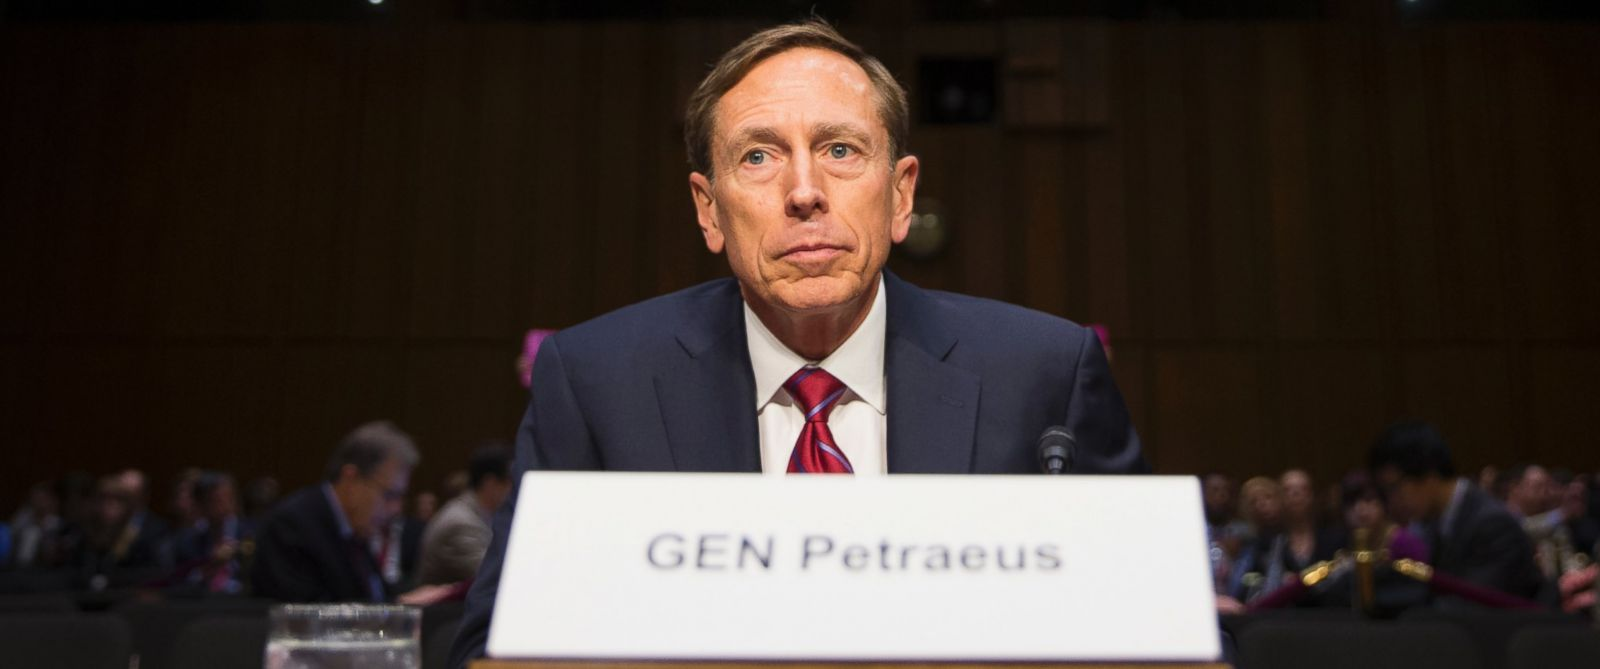 PHOTO: Former CIA Director David Petraeus prepares to testify on Capitol Hill in Washington, Sept. 22, 2015, before the Senate Armed Services Committee hearing on Middle East policy.